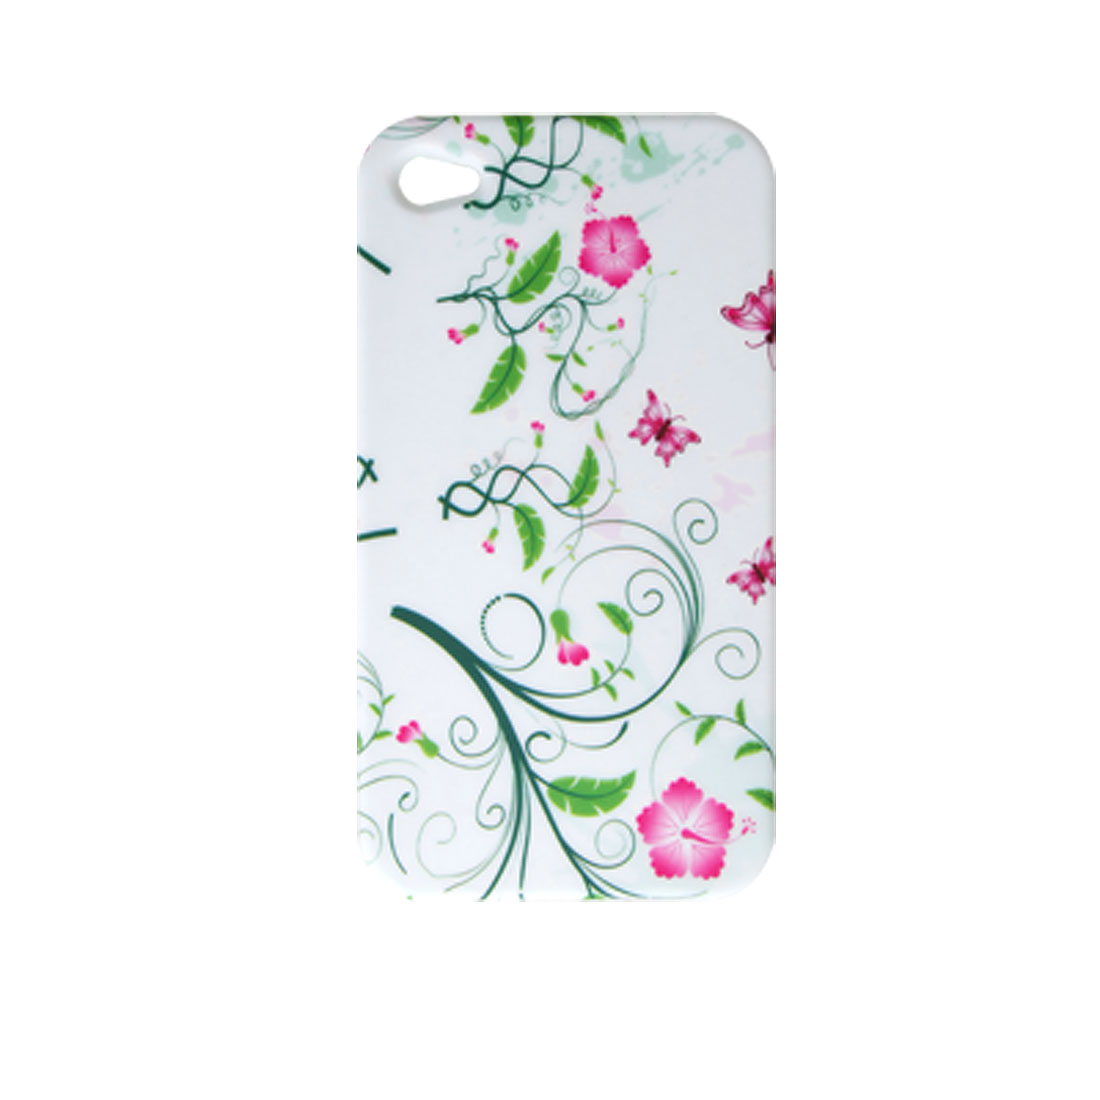 Plants Butterfly Decor Soft Plastic Back Case for Apple iPhone 4 4G